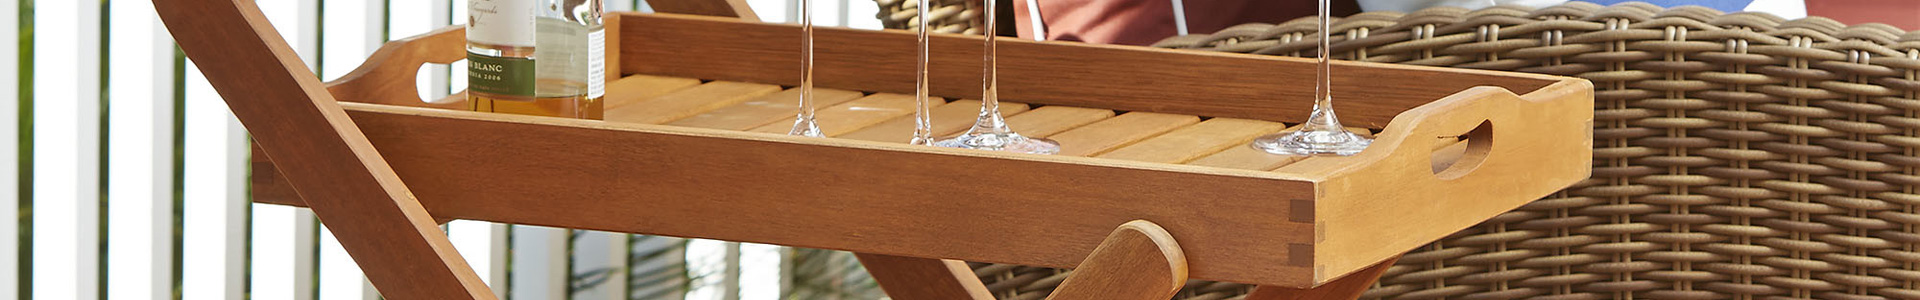 Outdoor Serving Carts